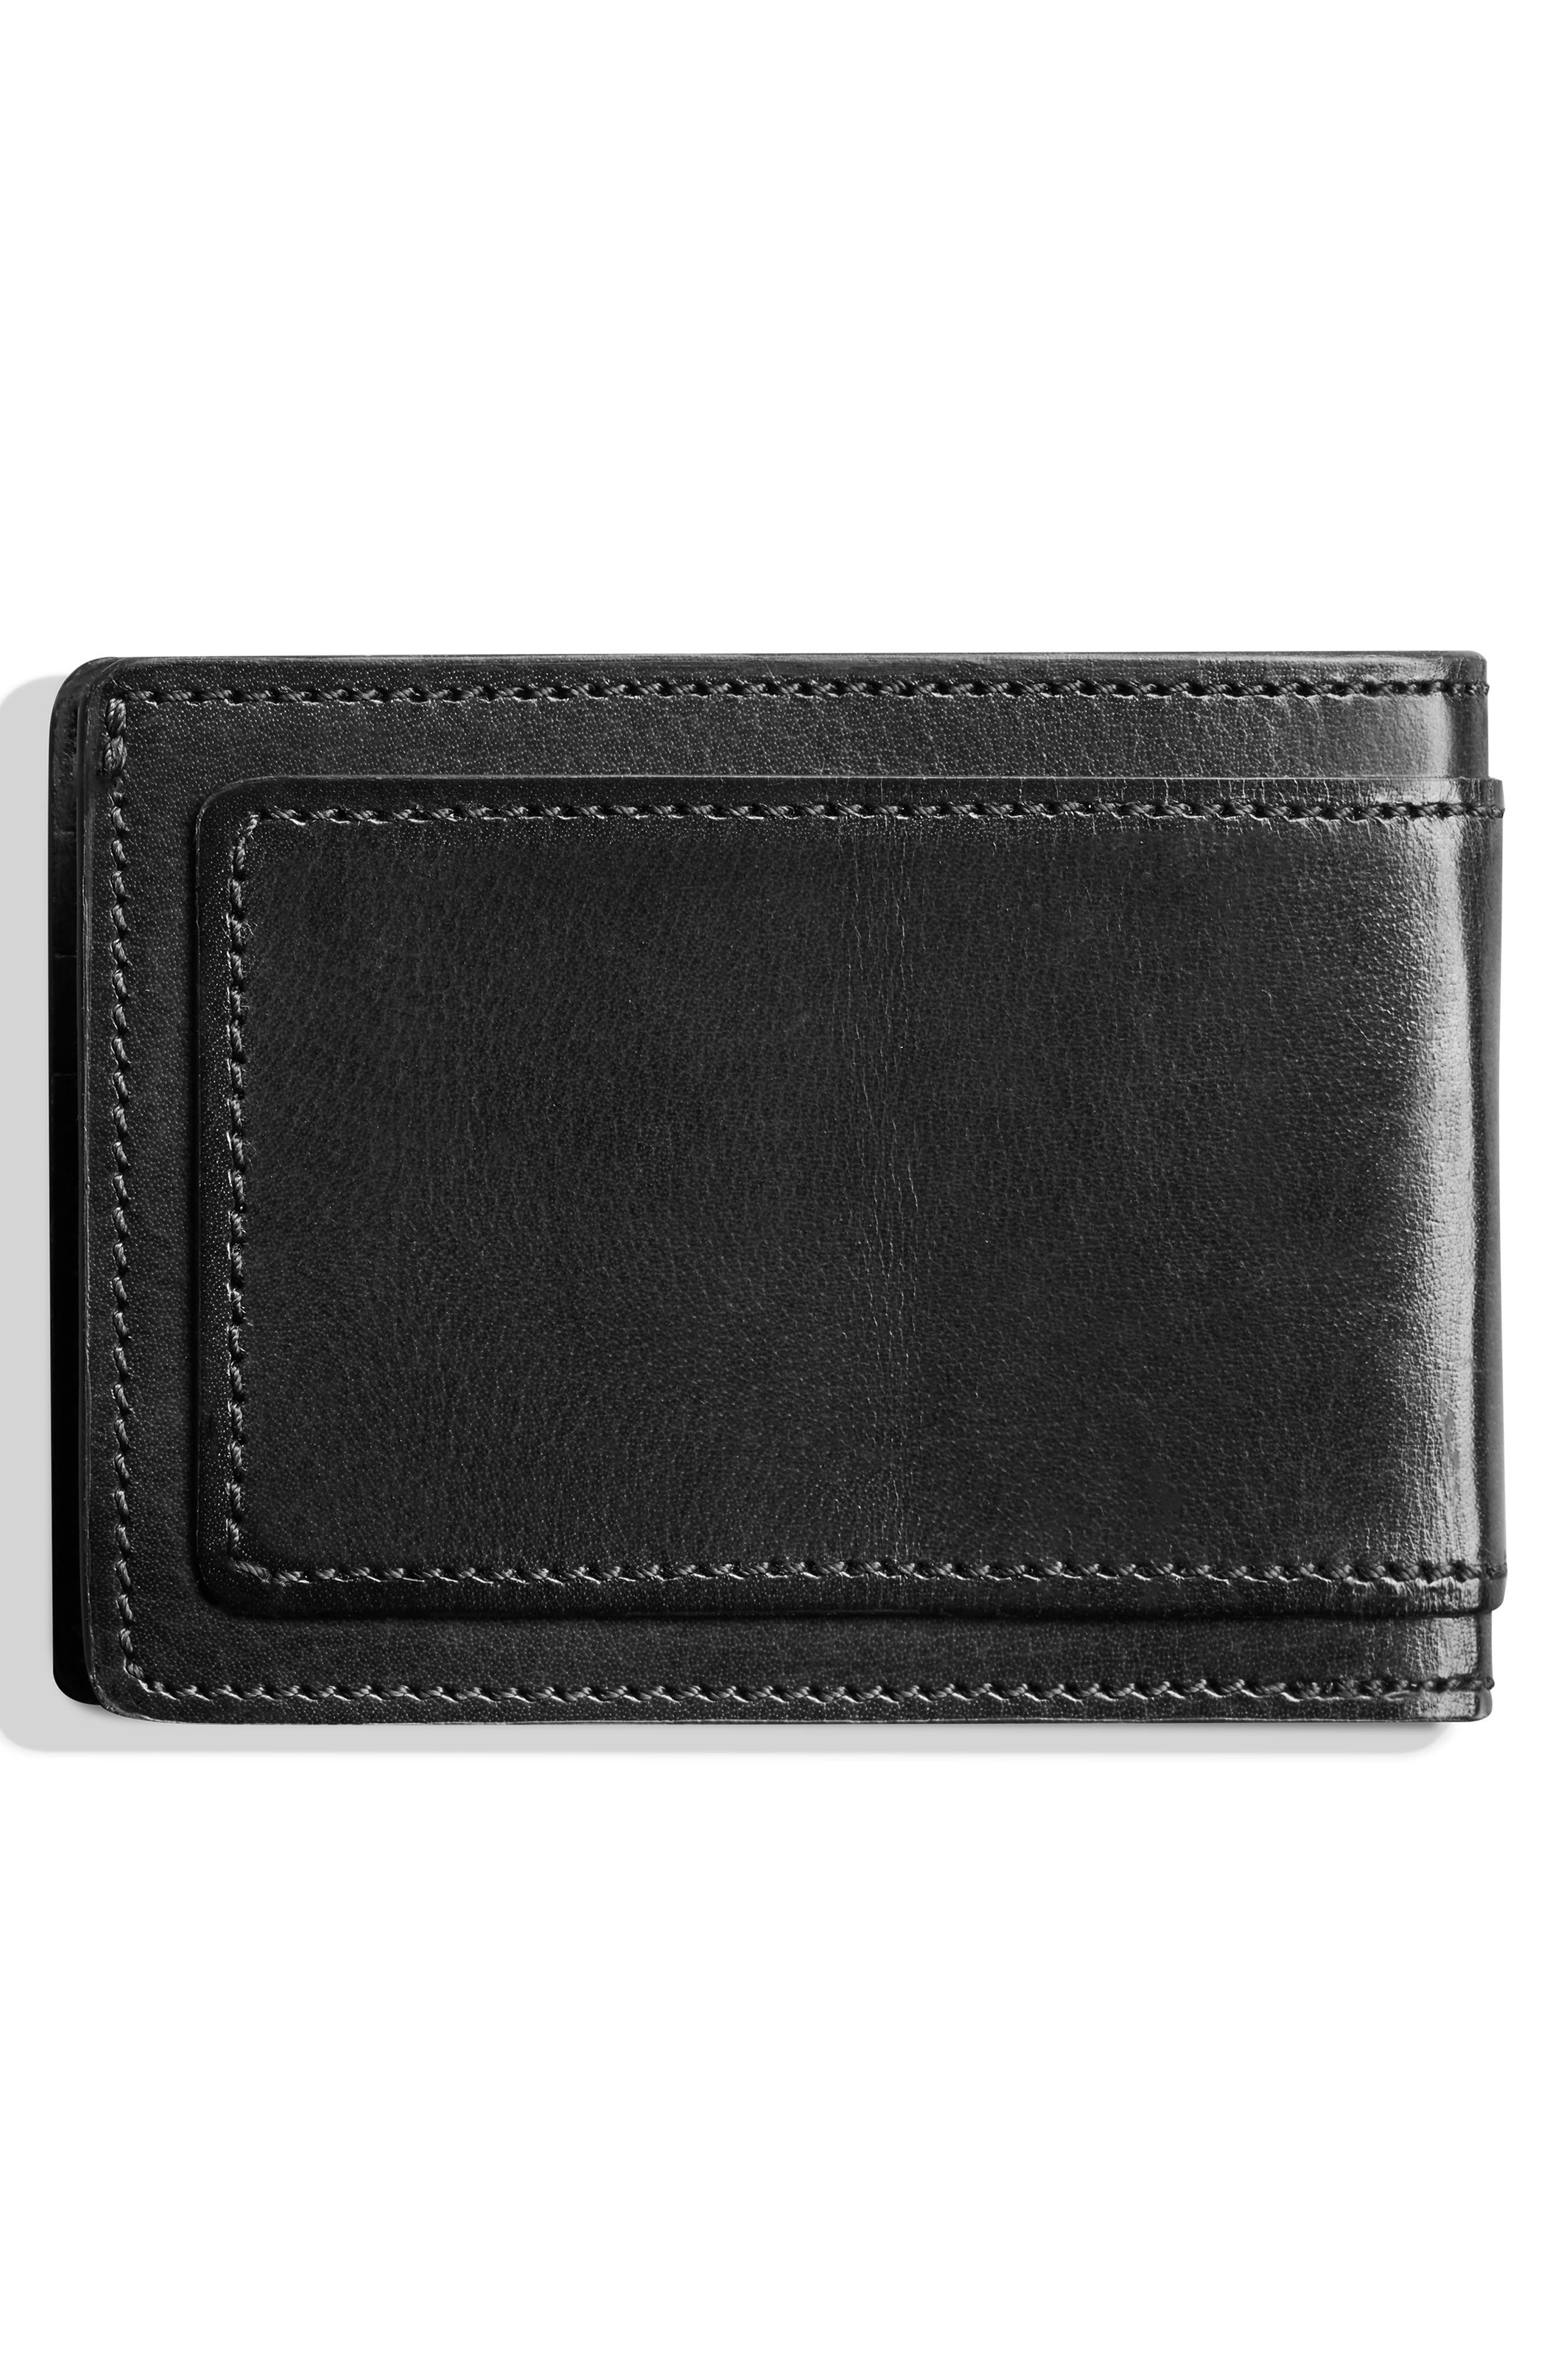 Outlaw Wallet,                             Alternate thumbnail 3, color,                             BLACK